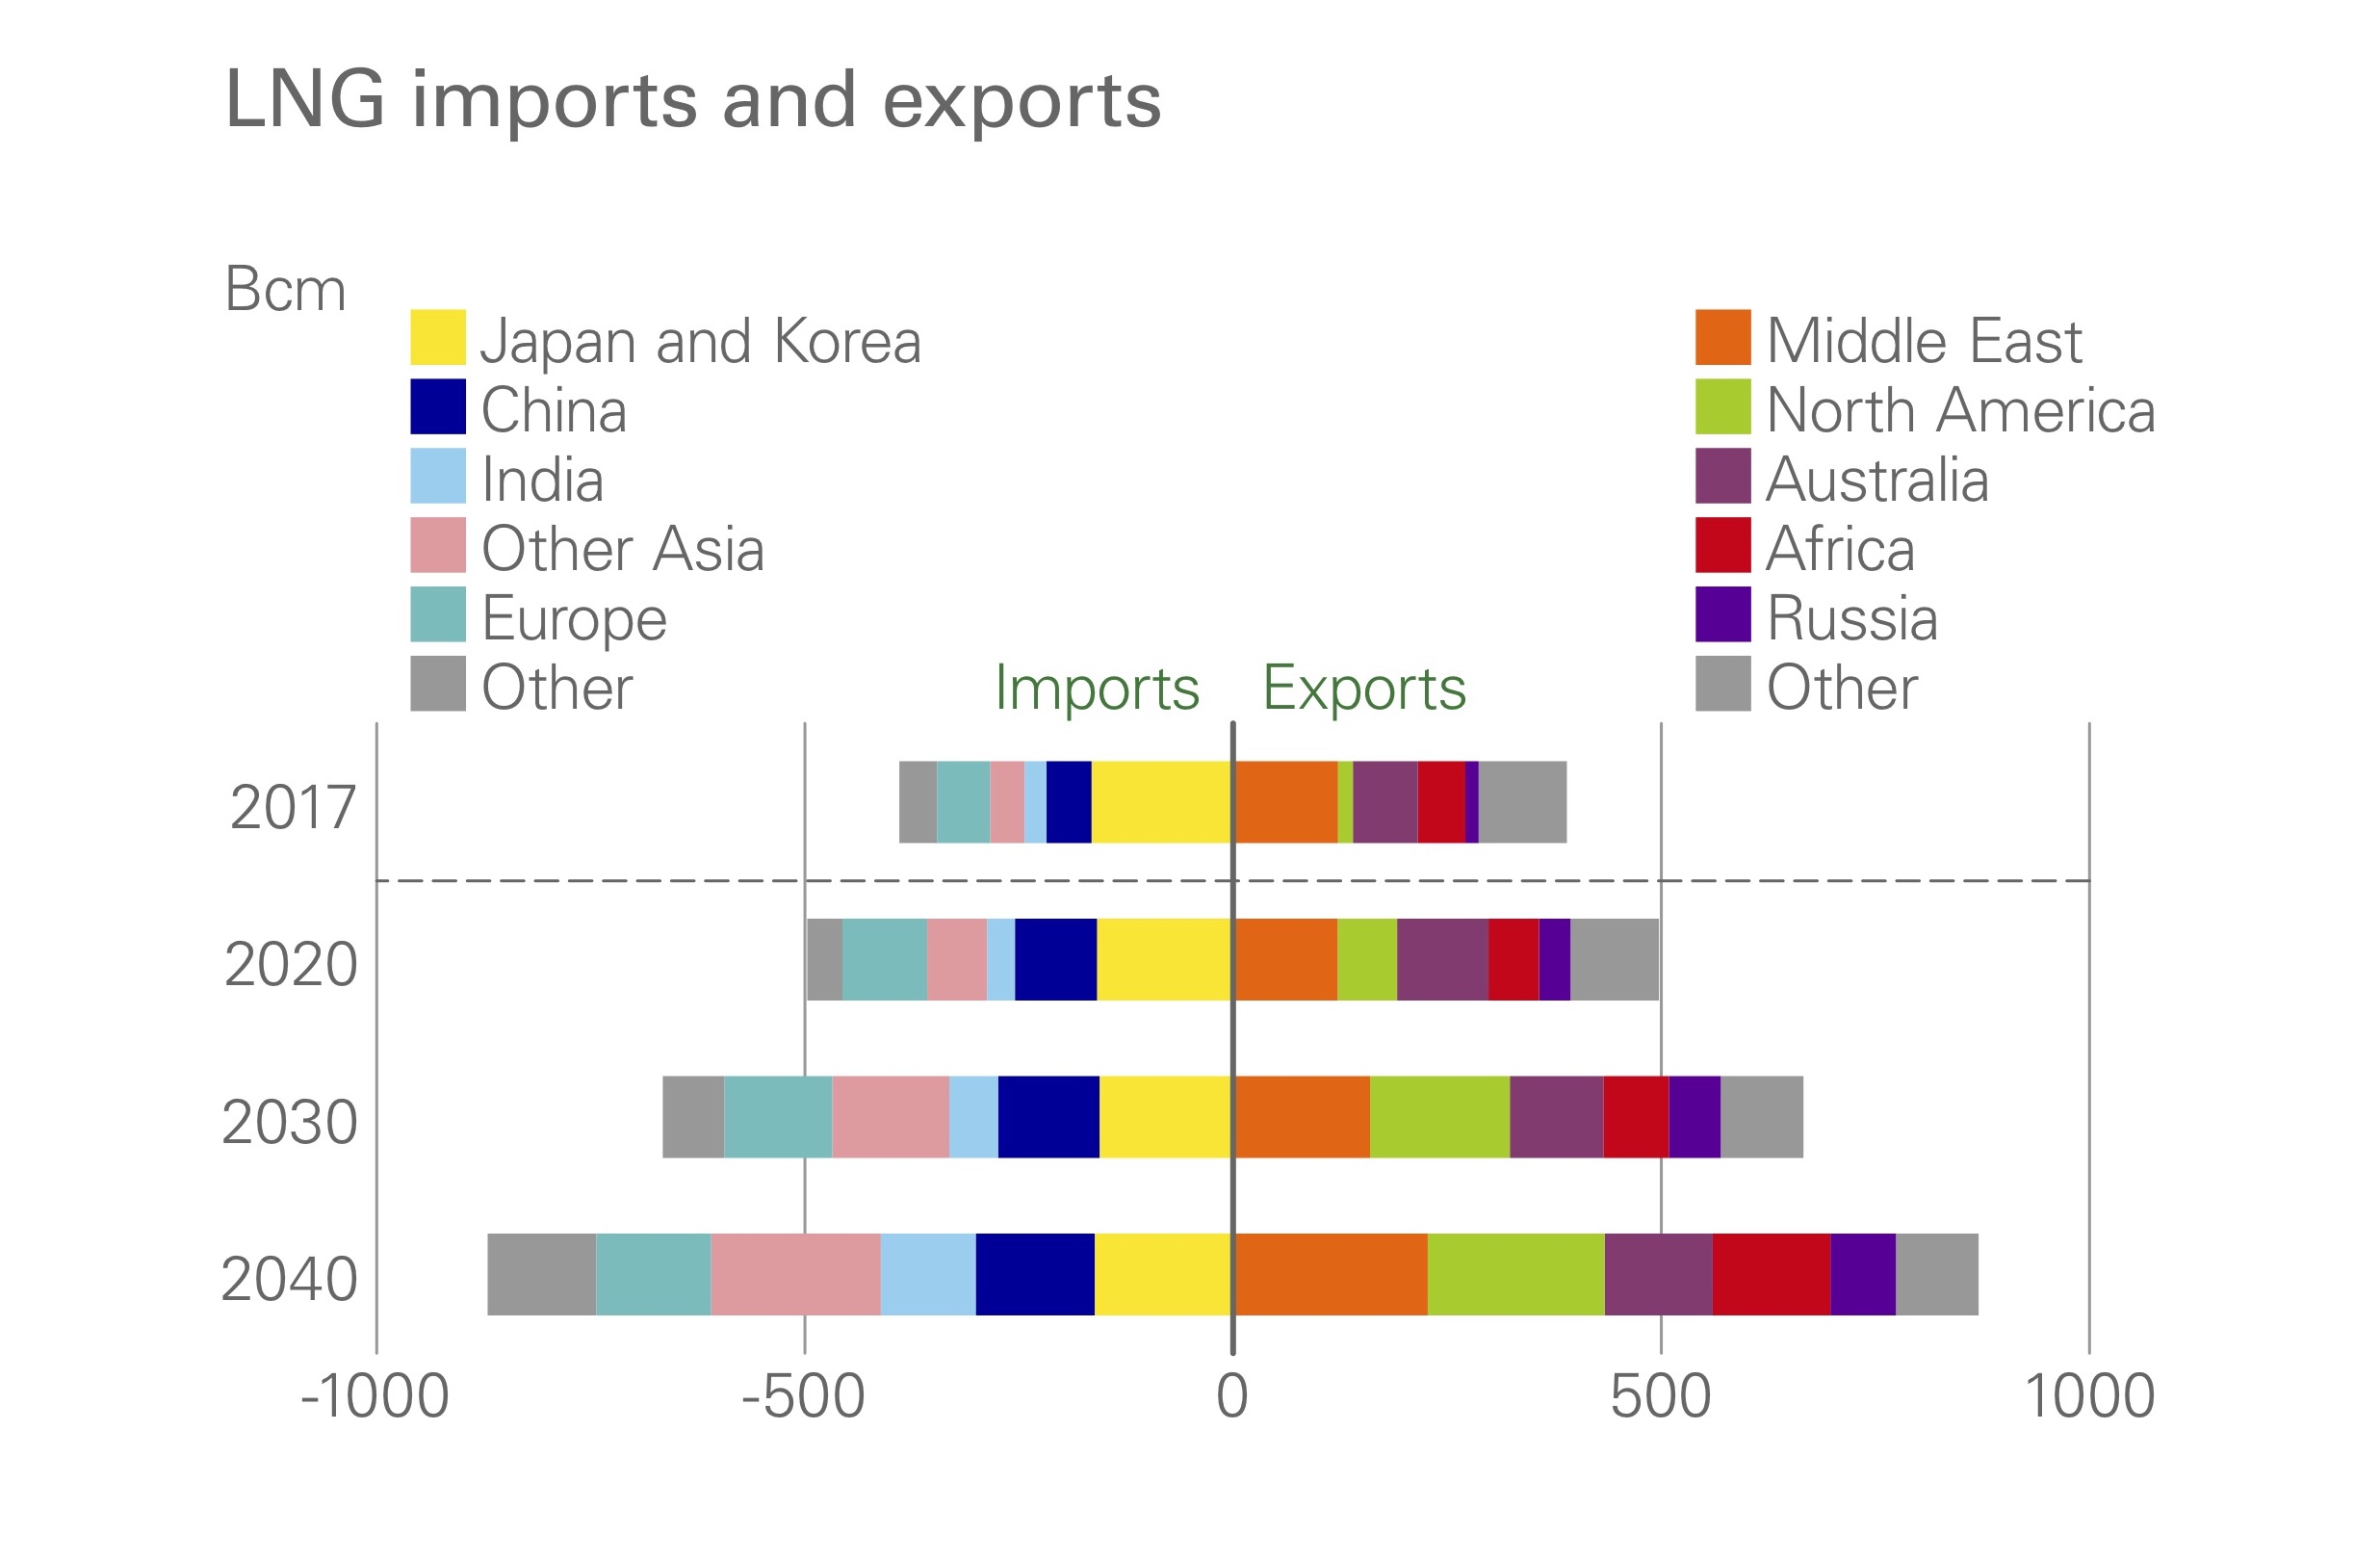 lng-imports-and-exports-eo19-p98-w.jpg